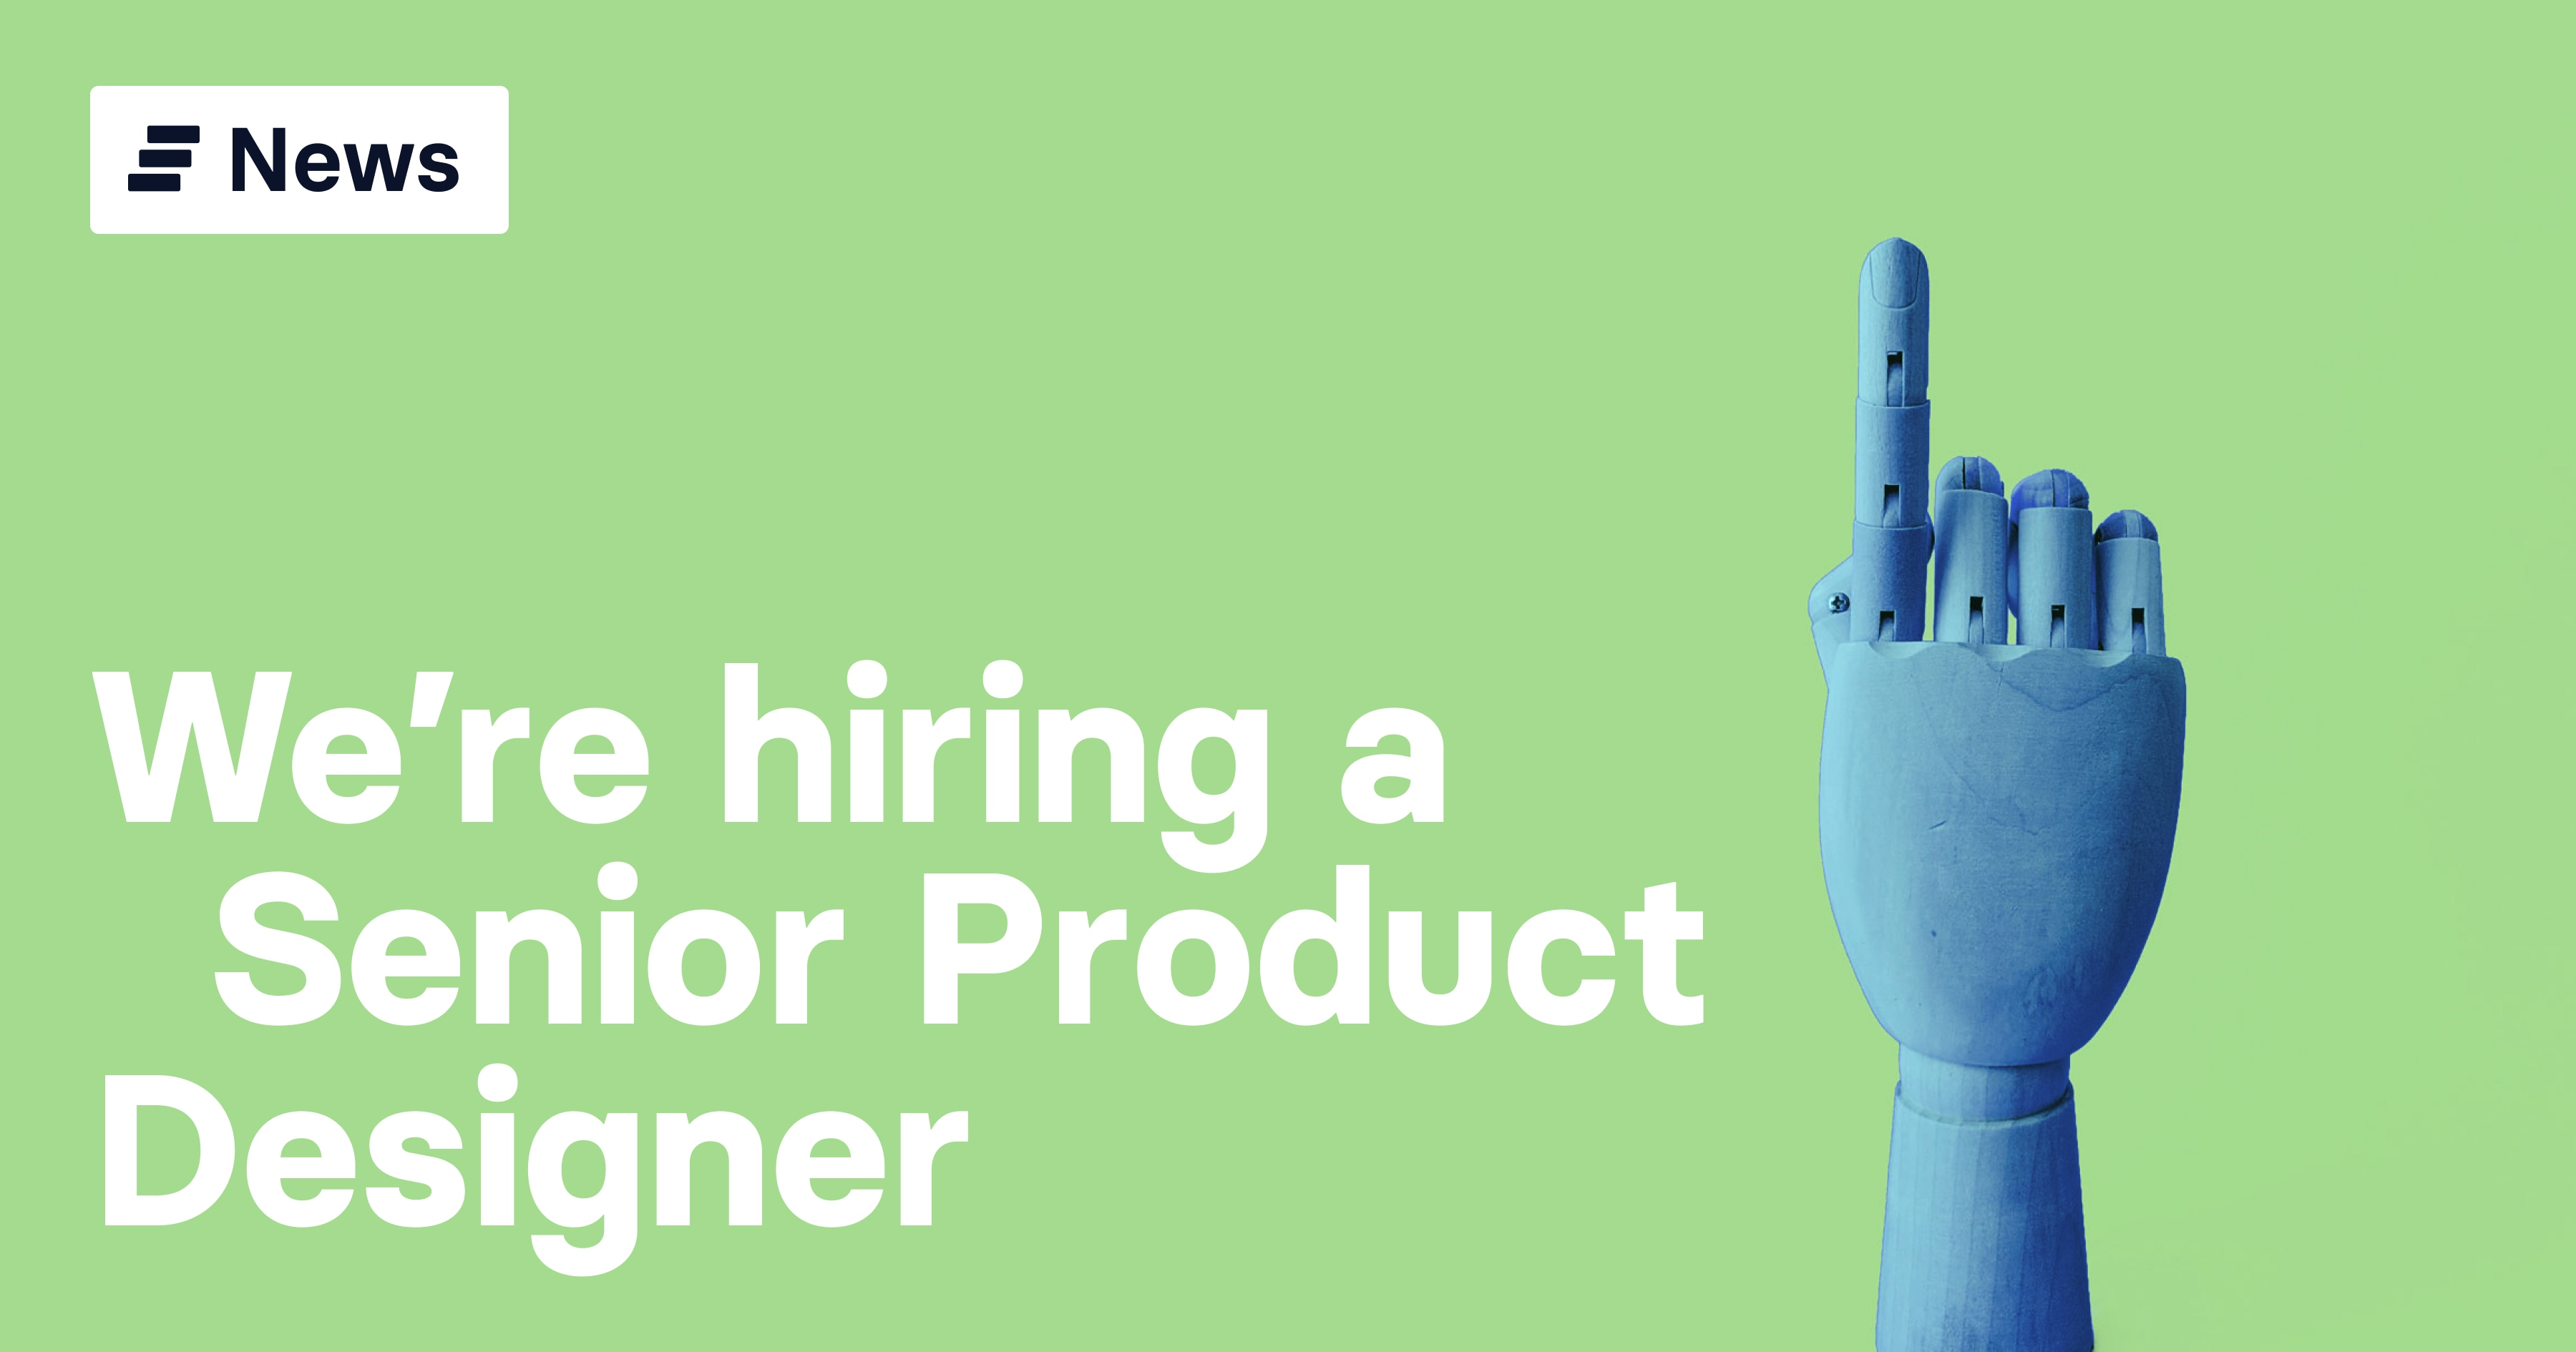 We're hiring: Senior Product Designer